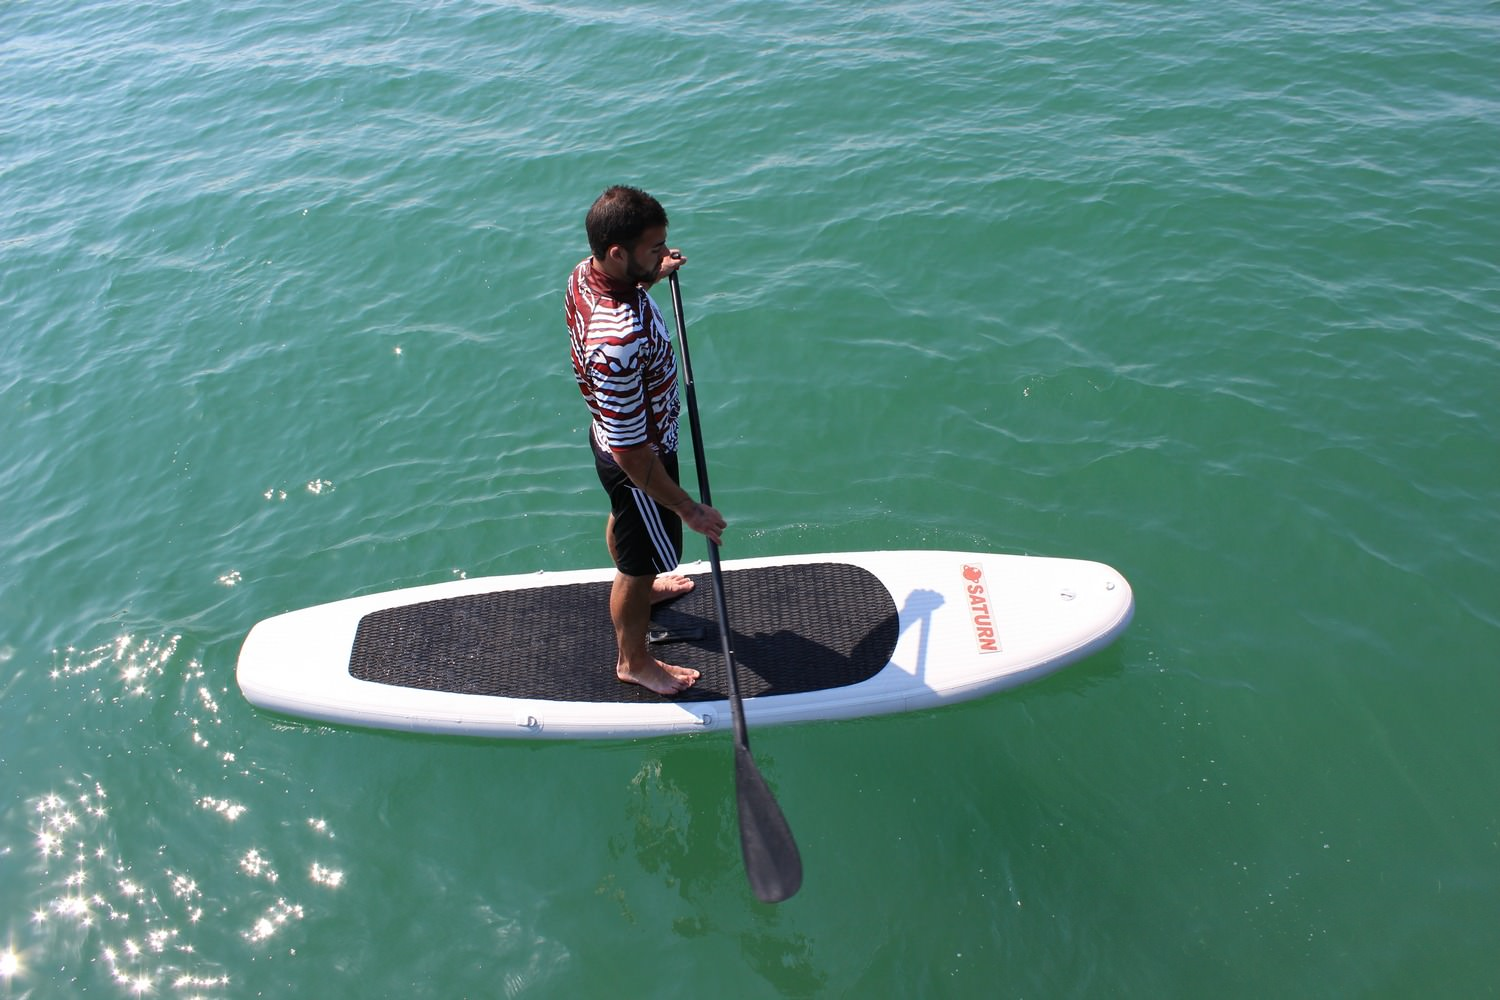 Saturn 11 Ultra Light Inflatable SUP Paddle Board ly $499